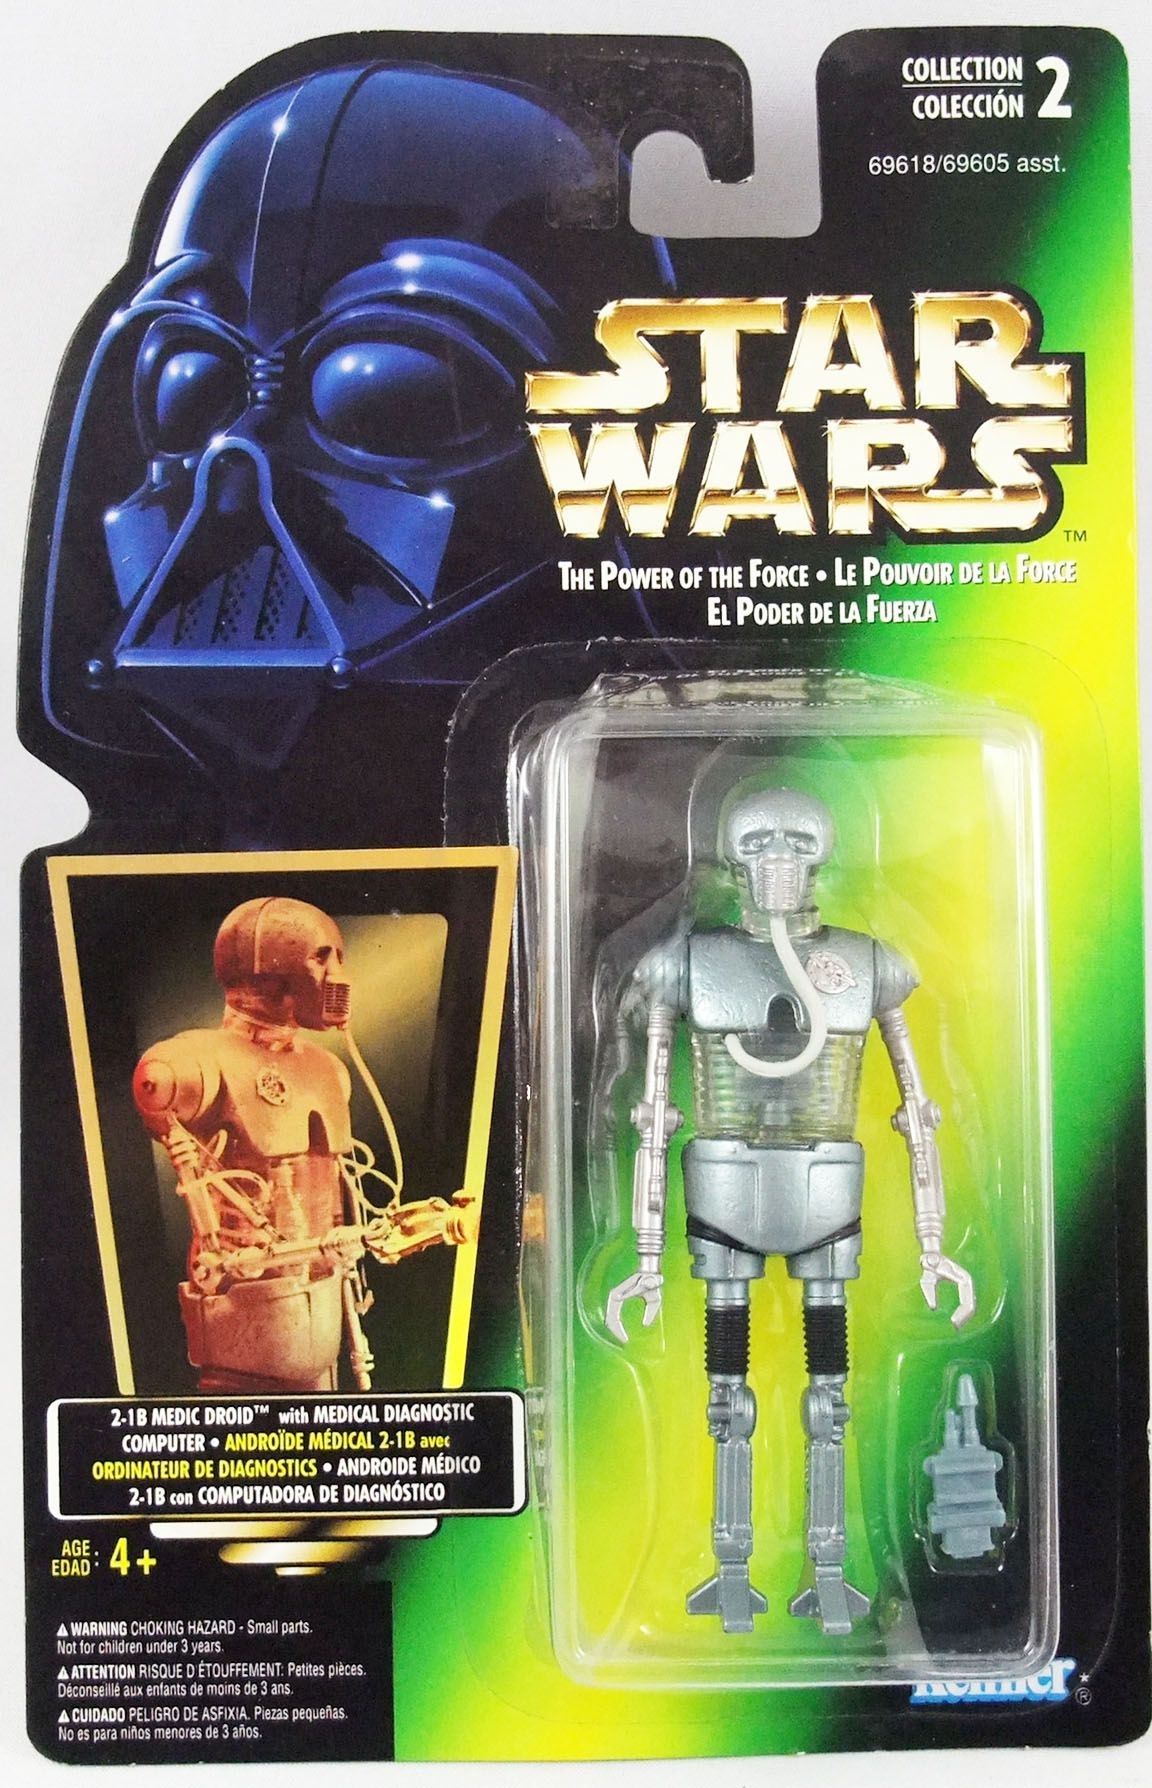 Star Wars (The Power of the Force) - Kenner - 2-1B Droid Medical